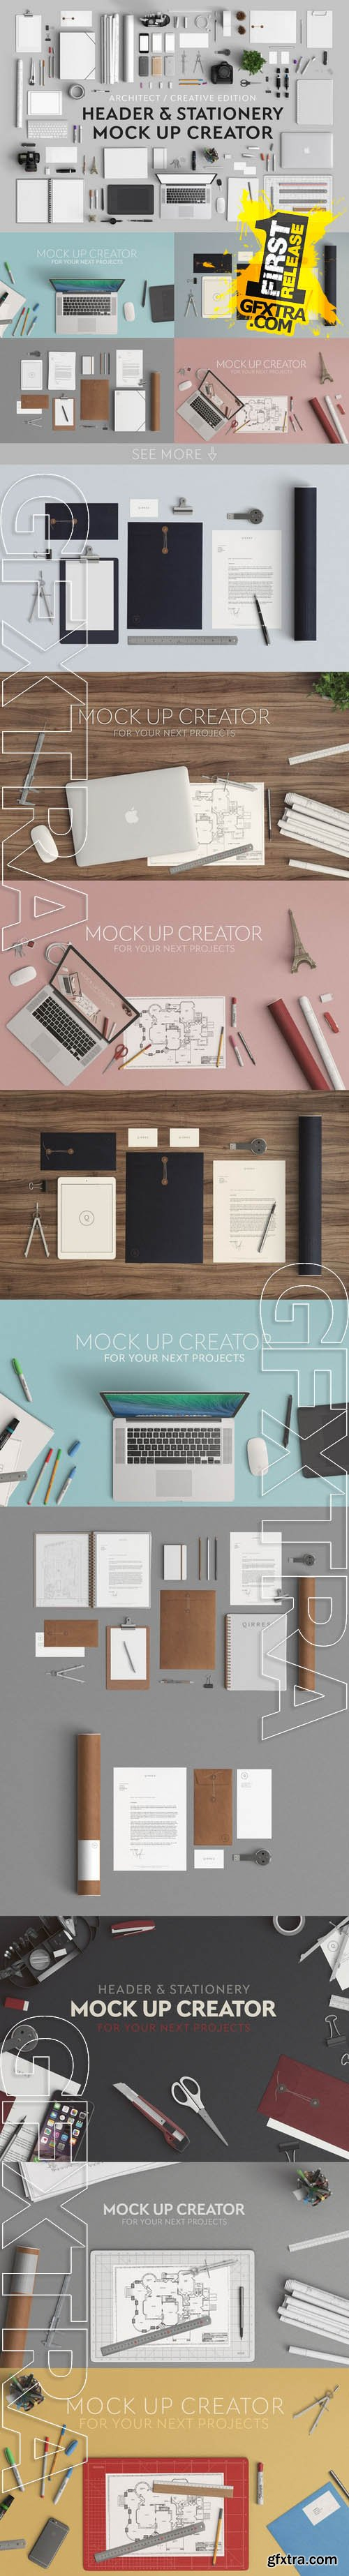 Header & Stationery Mock Up Creator - Creativemarket 126175